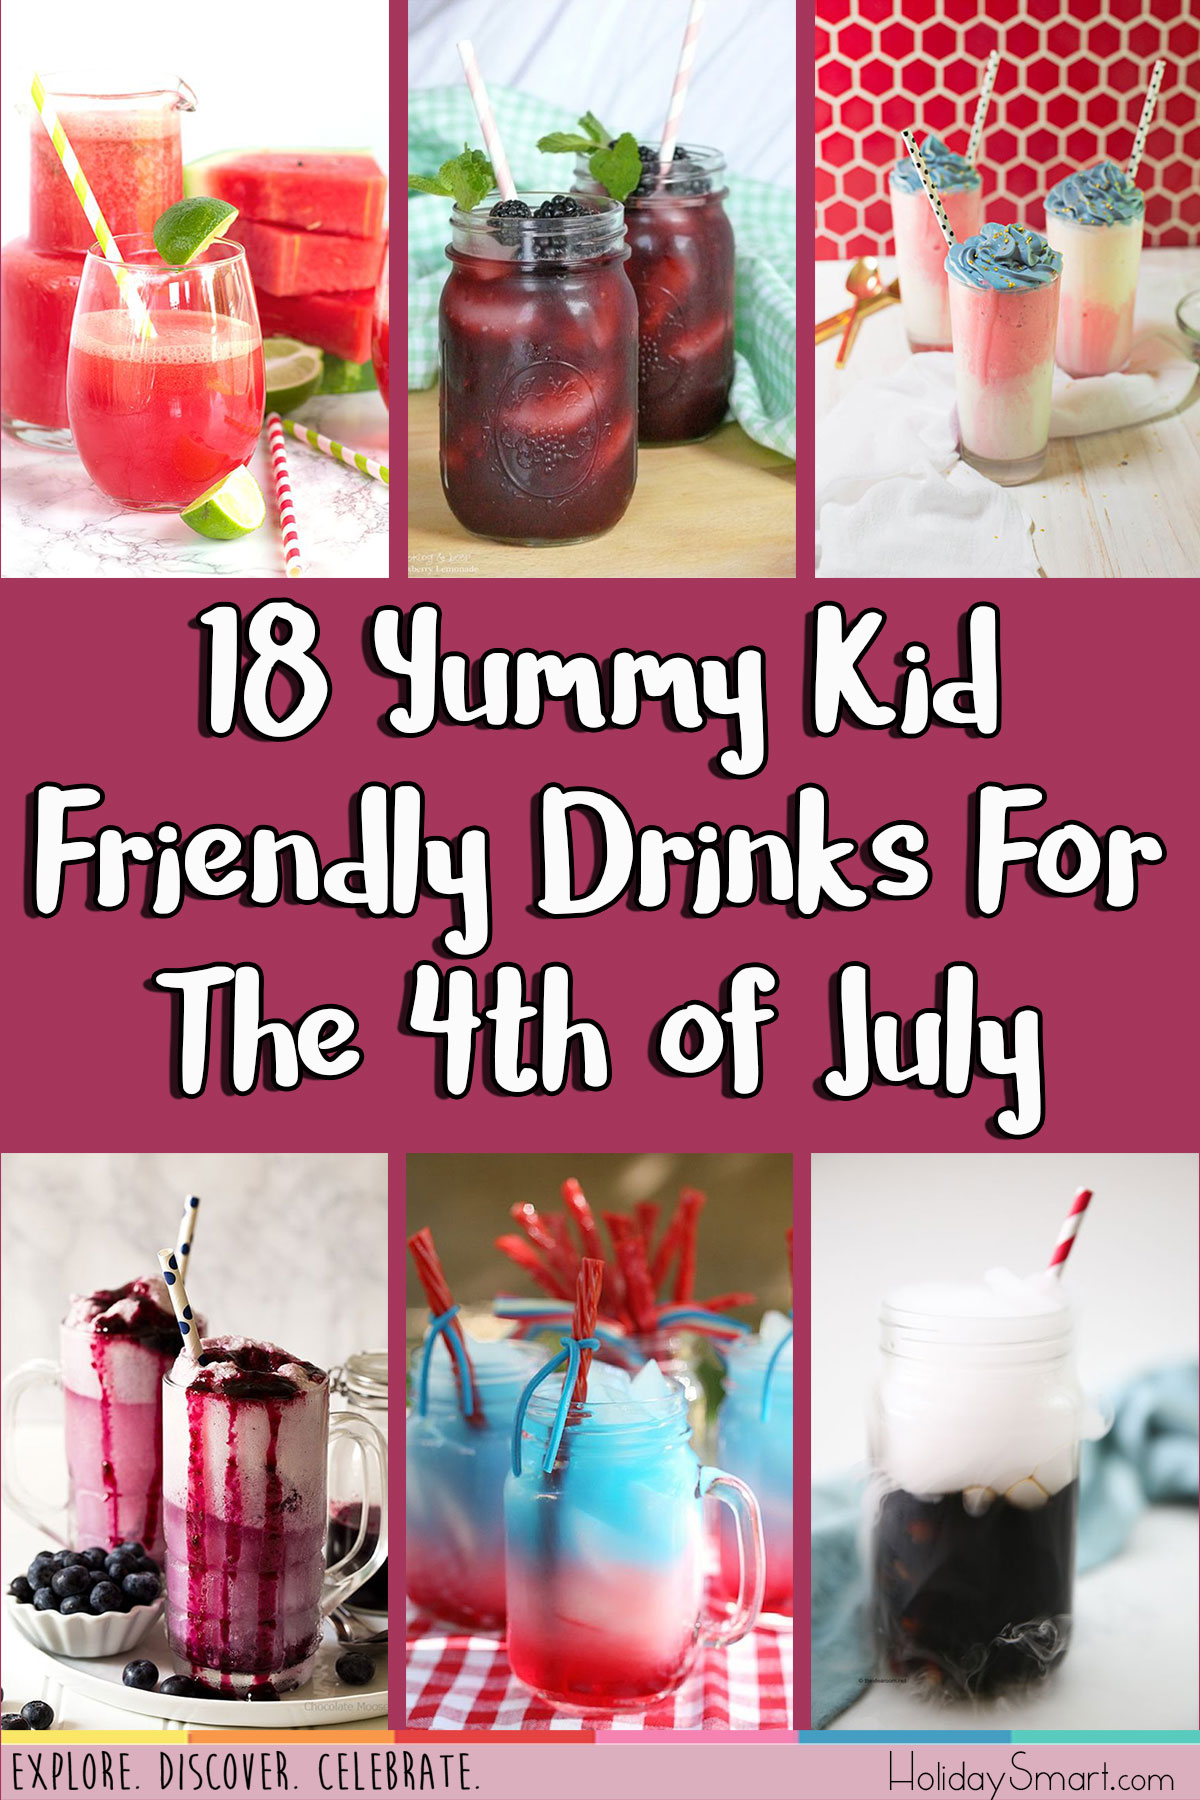 18 Yummy Kid Friendly Drinks For The 4th of July